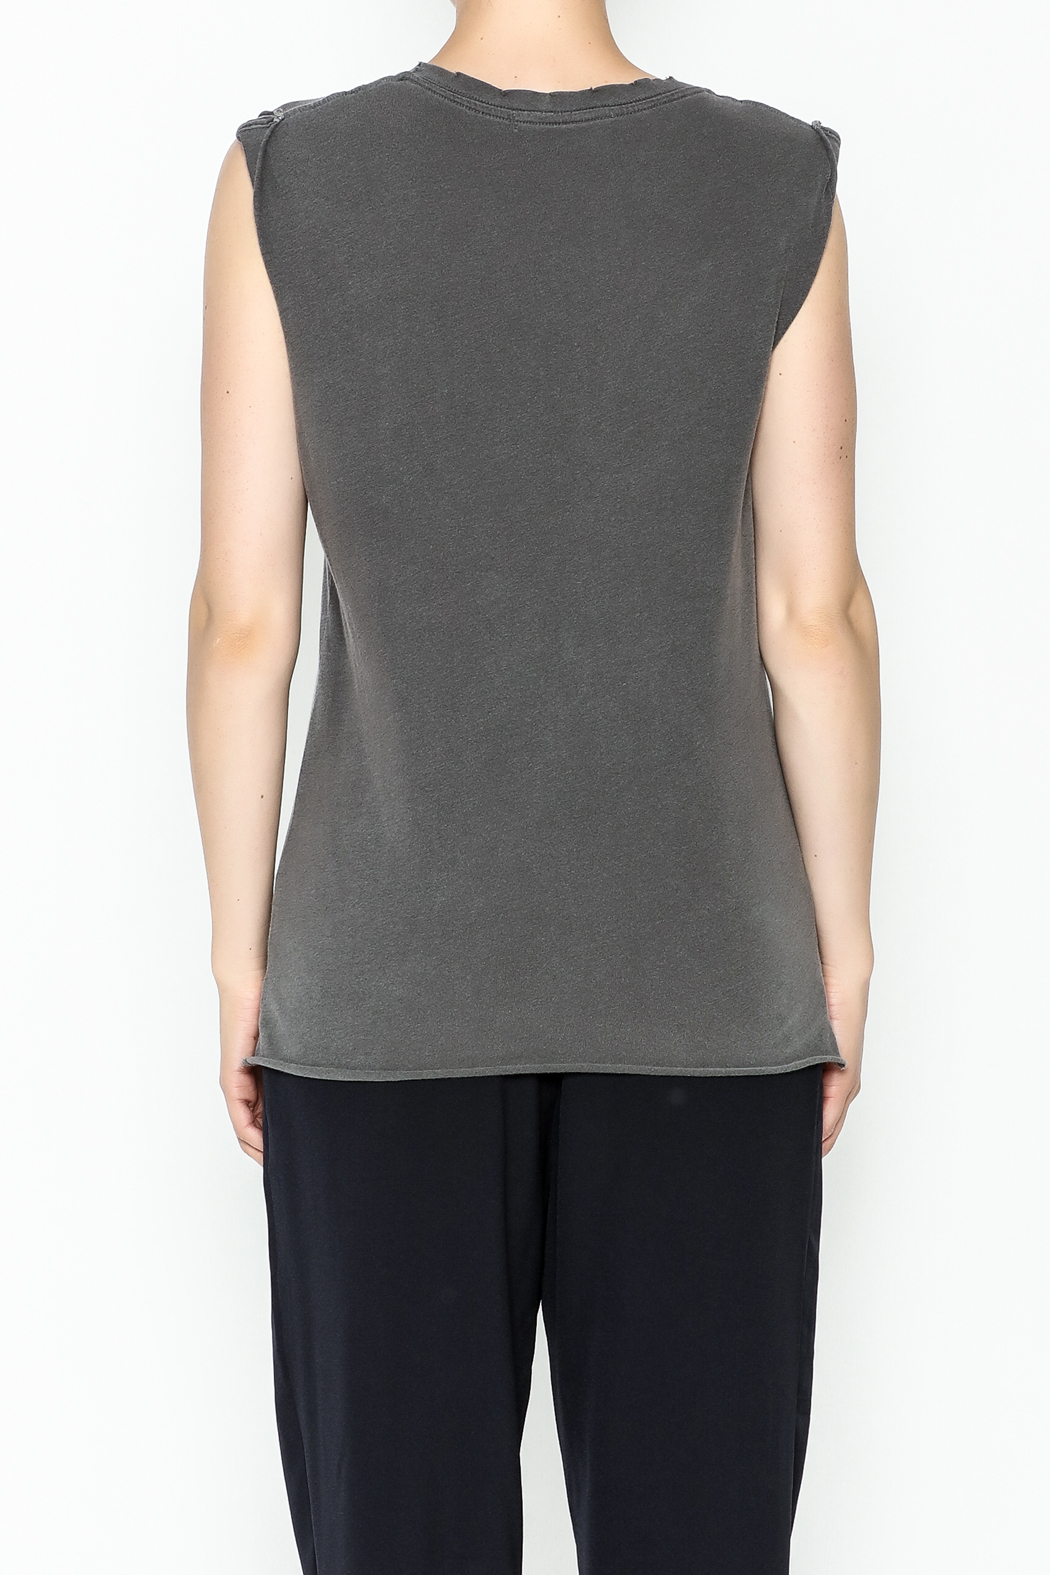 Project Social T Seed Muscle Tank Top - Back Cropped Image